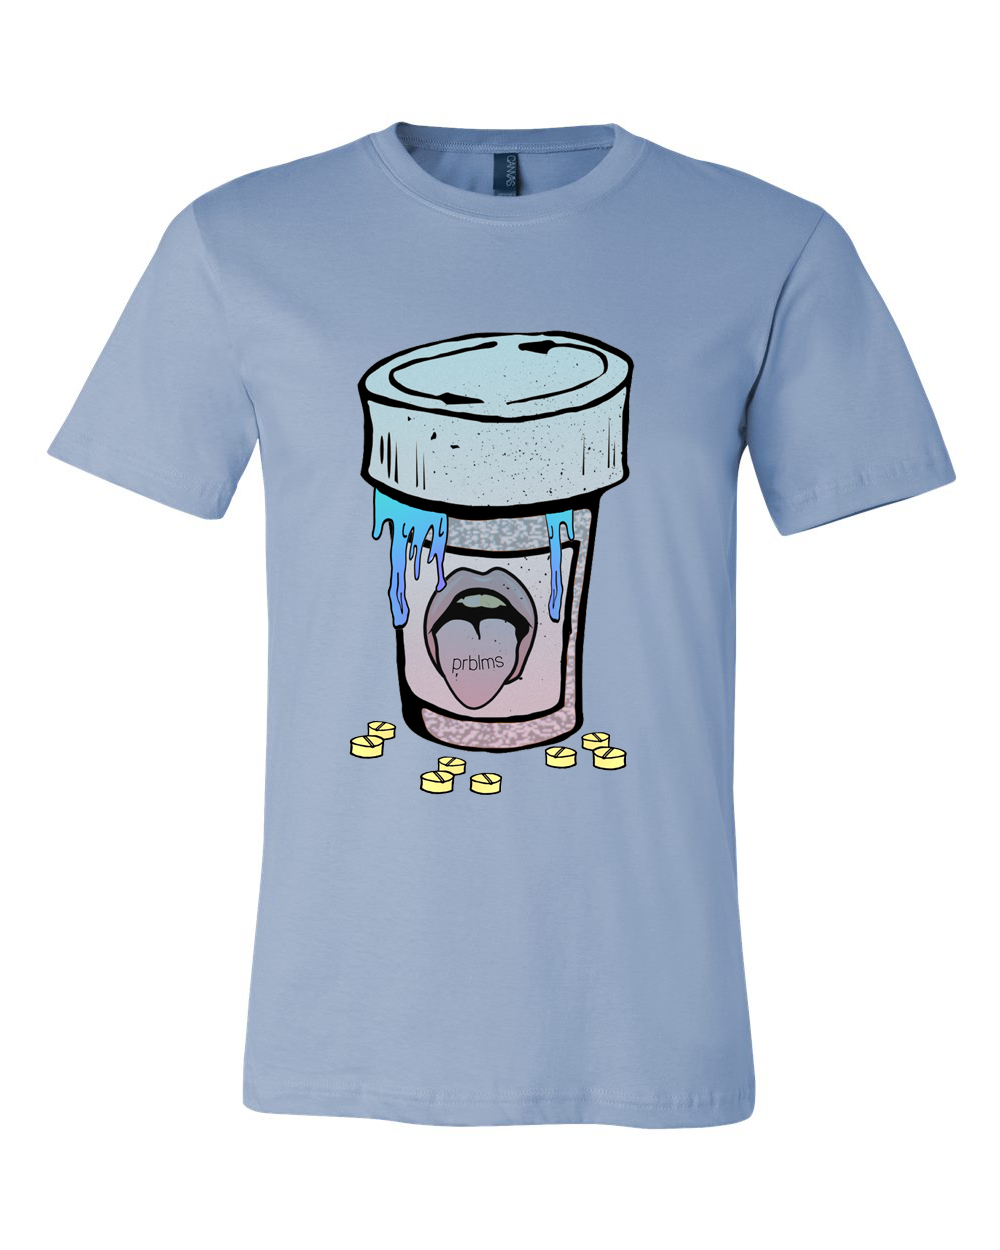 PRBLMS : Pill Bottle Tee